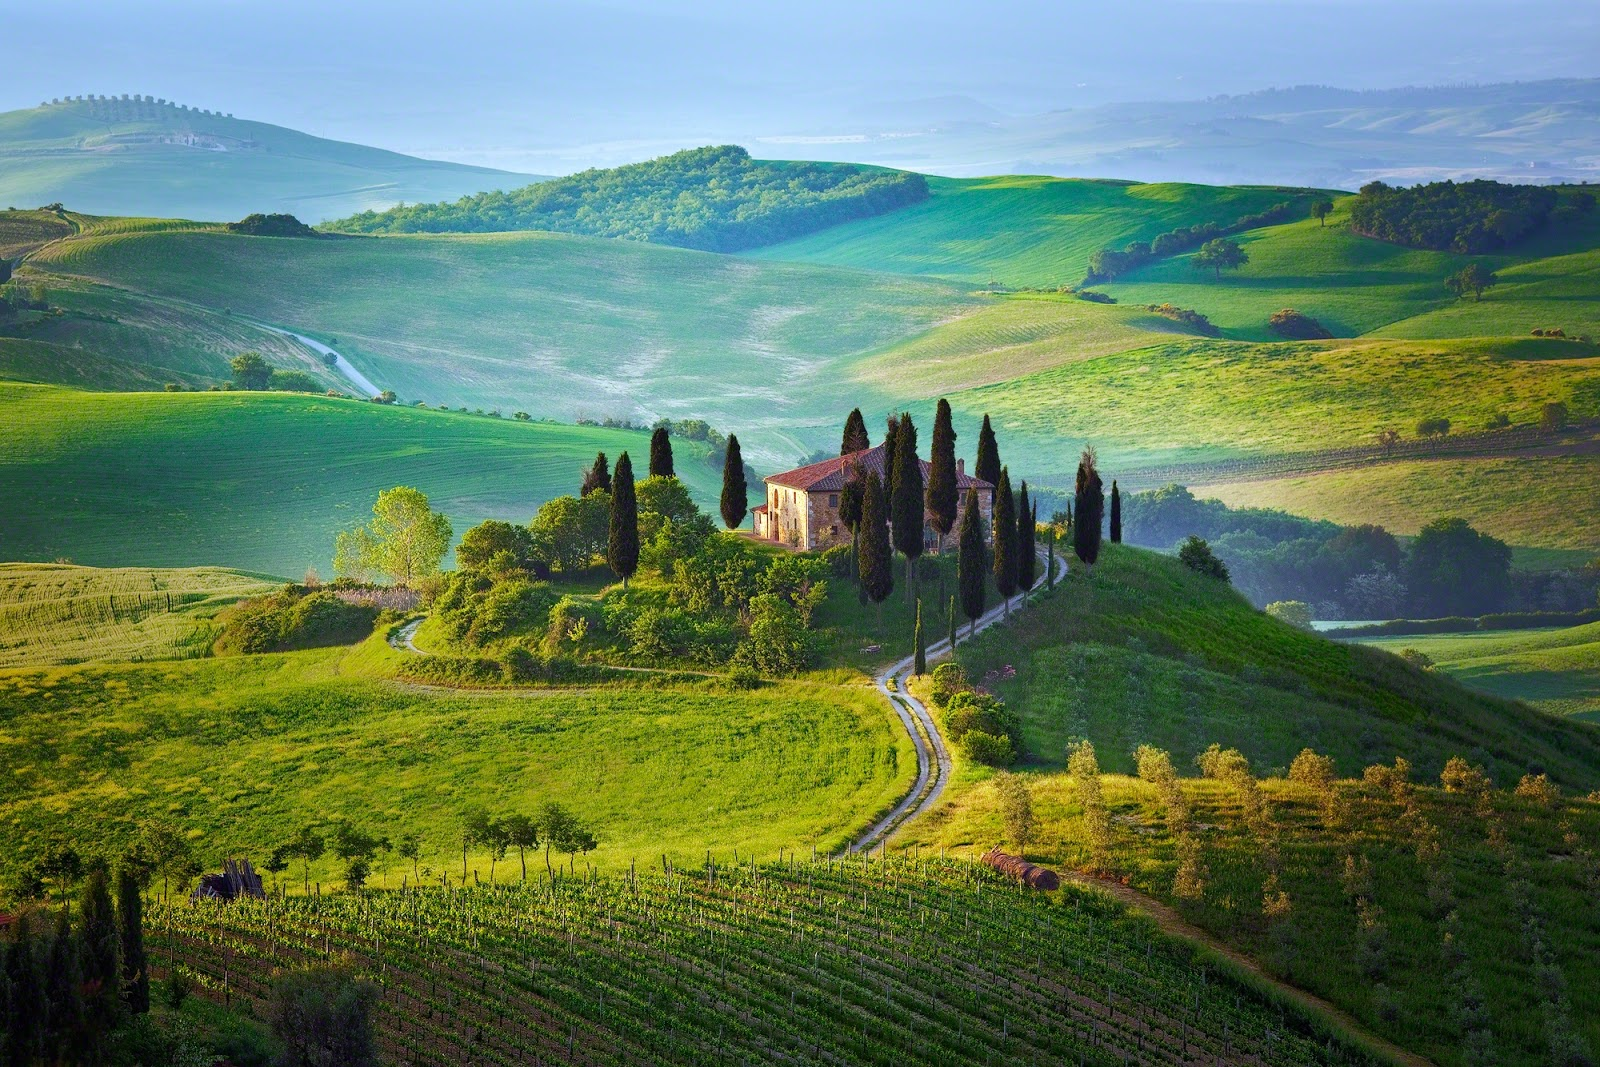 Each airline has their own procedures and methods for choosing which passengers to involuntarily bump, if needed.